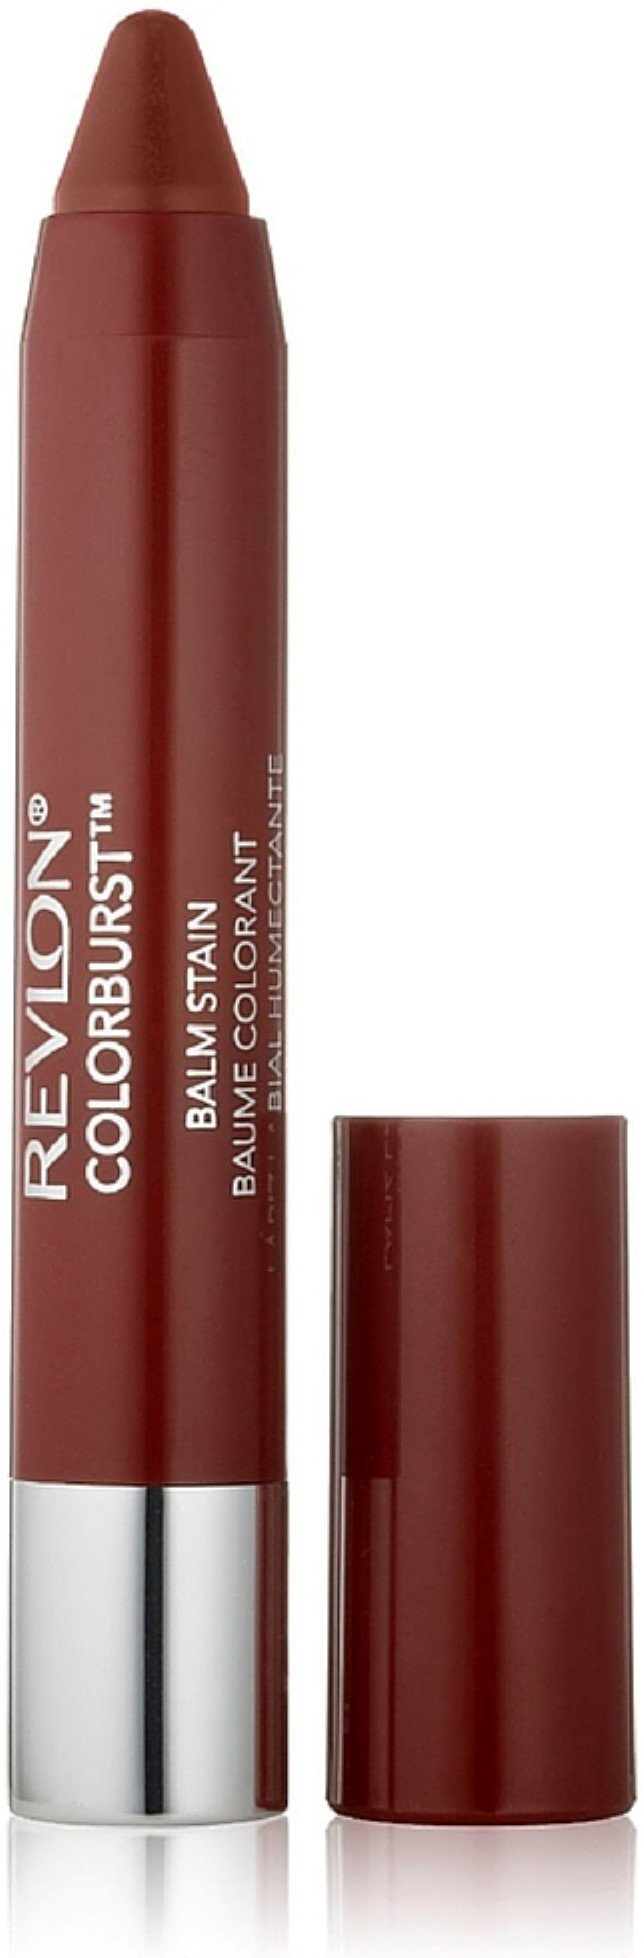 Revlon ColorBurst Balm Stain, Adore 0.09 oz (Pack of 10)